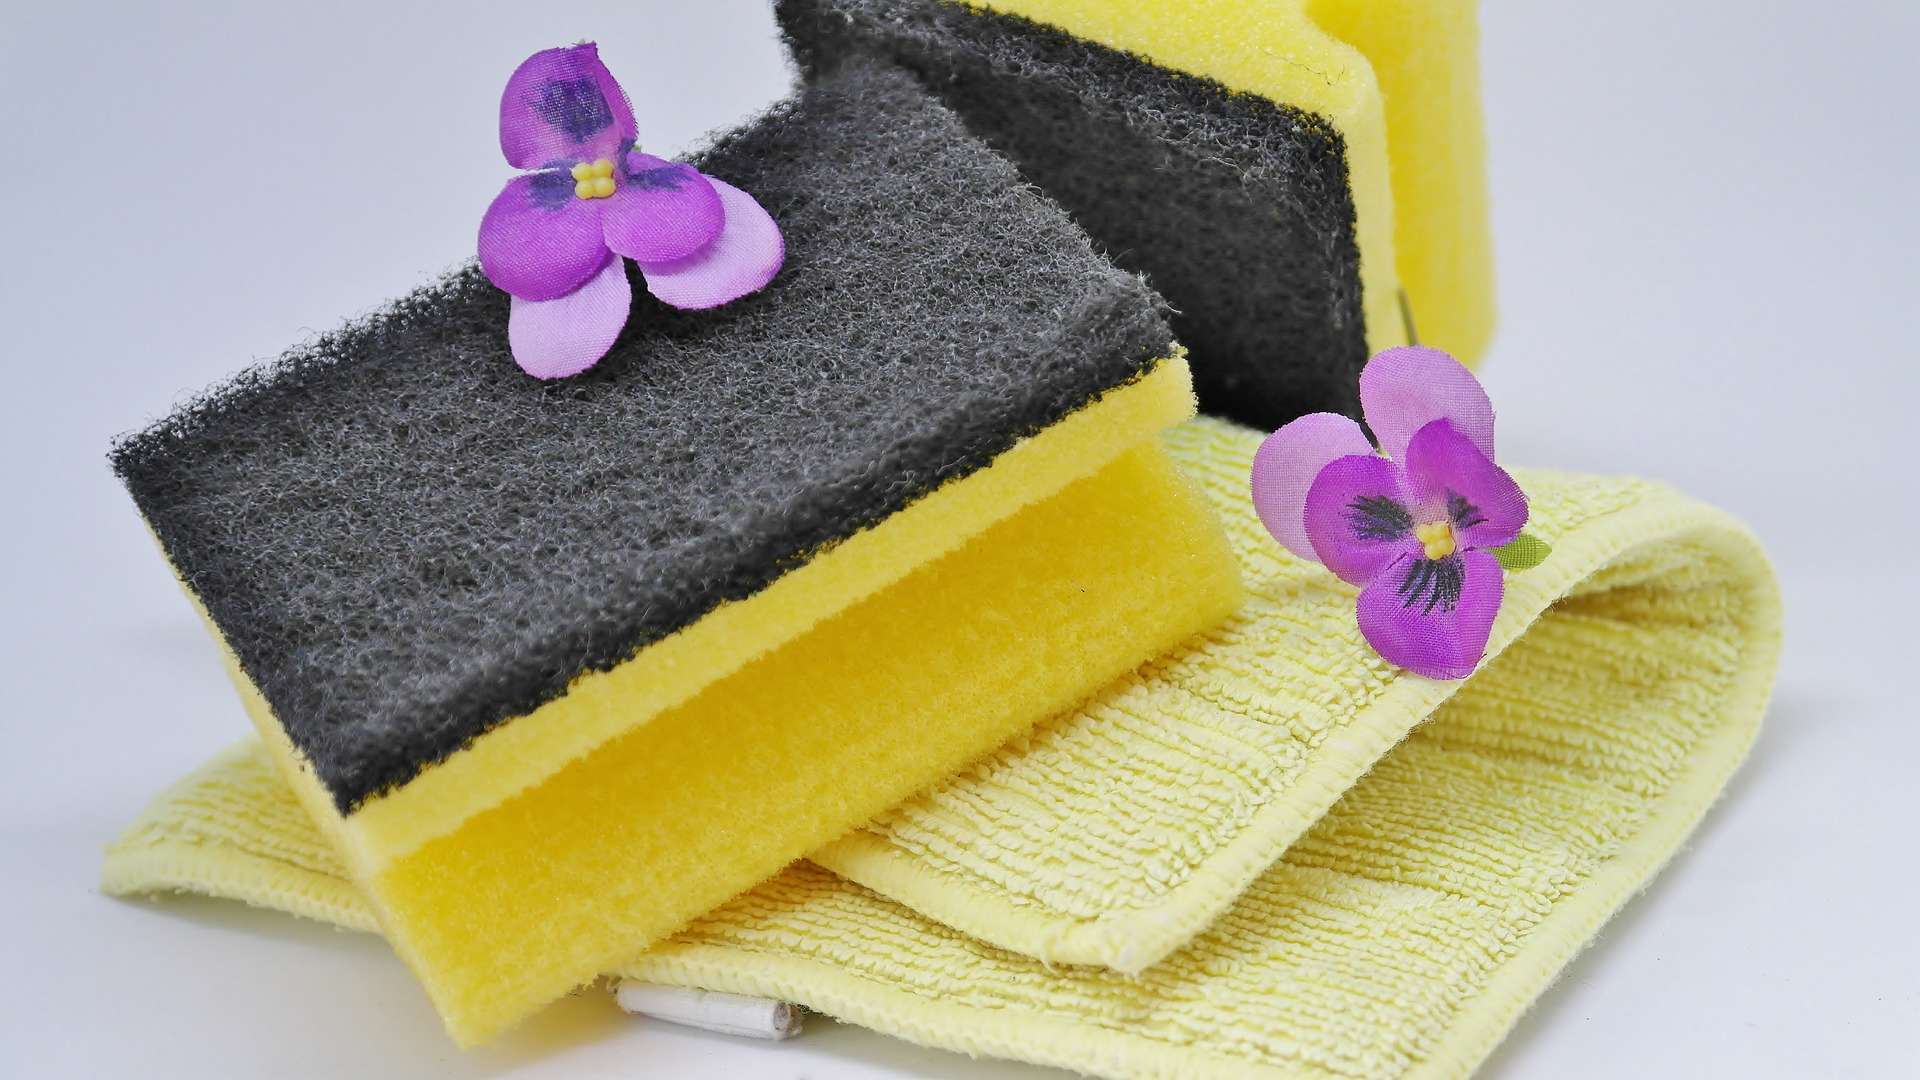 sponges and a towel